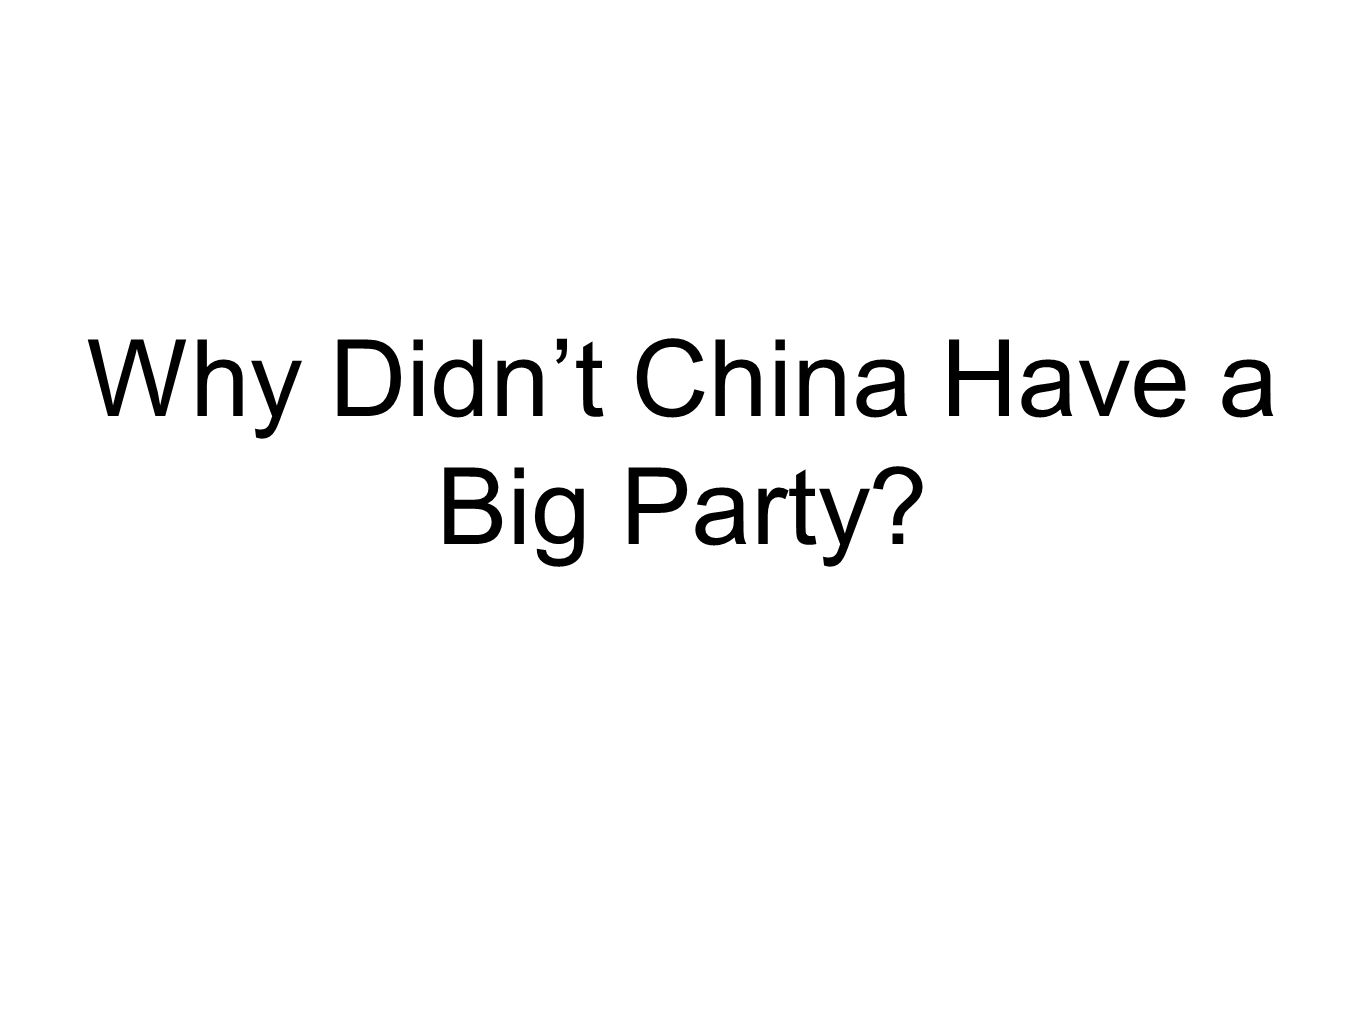 Why Didn't China Have a Big Party